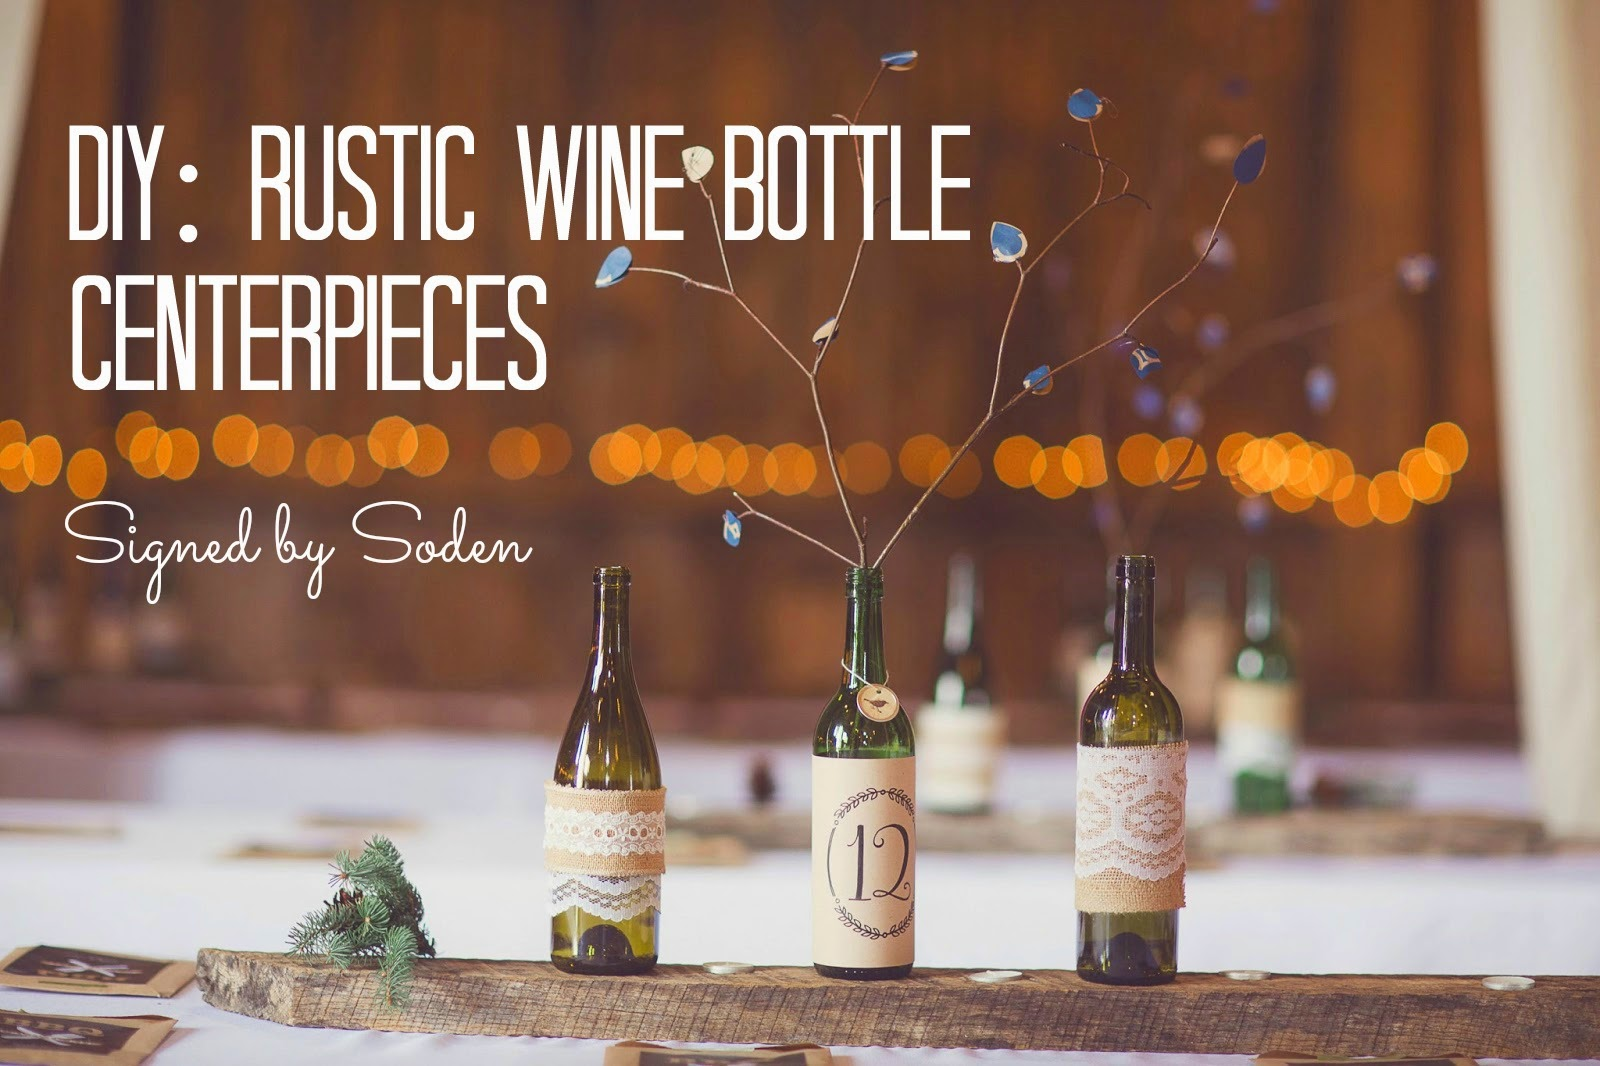 Diy rustic wine bottle centerpieces signed by soden for Wedding table decorations with wine bottles